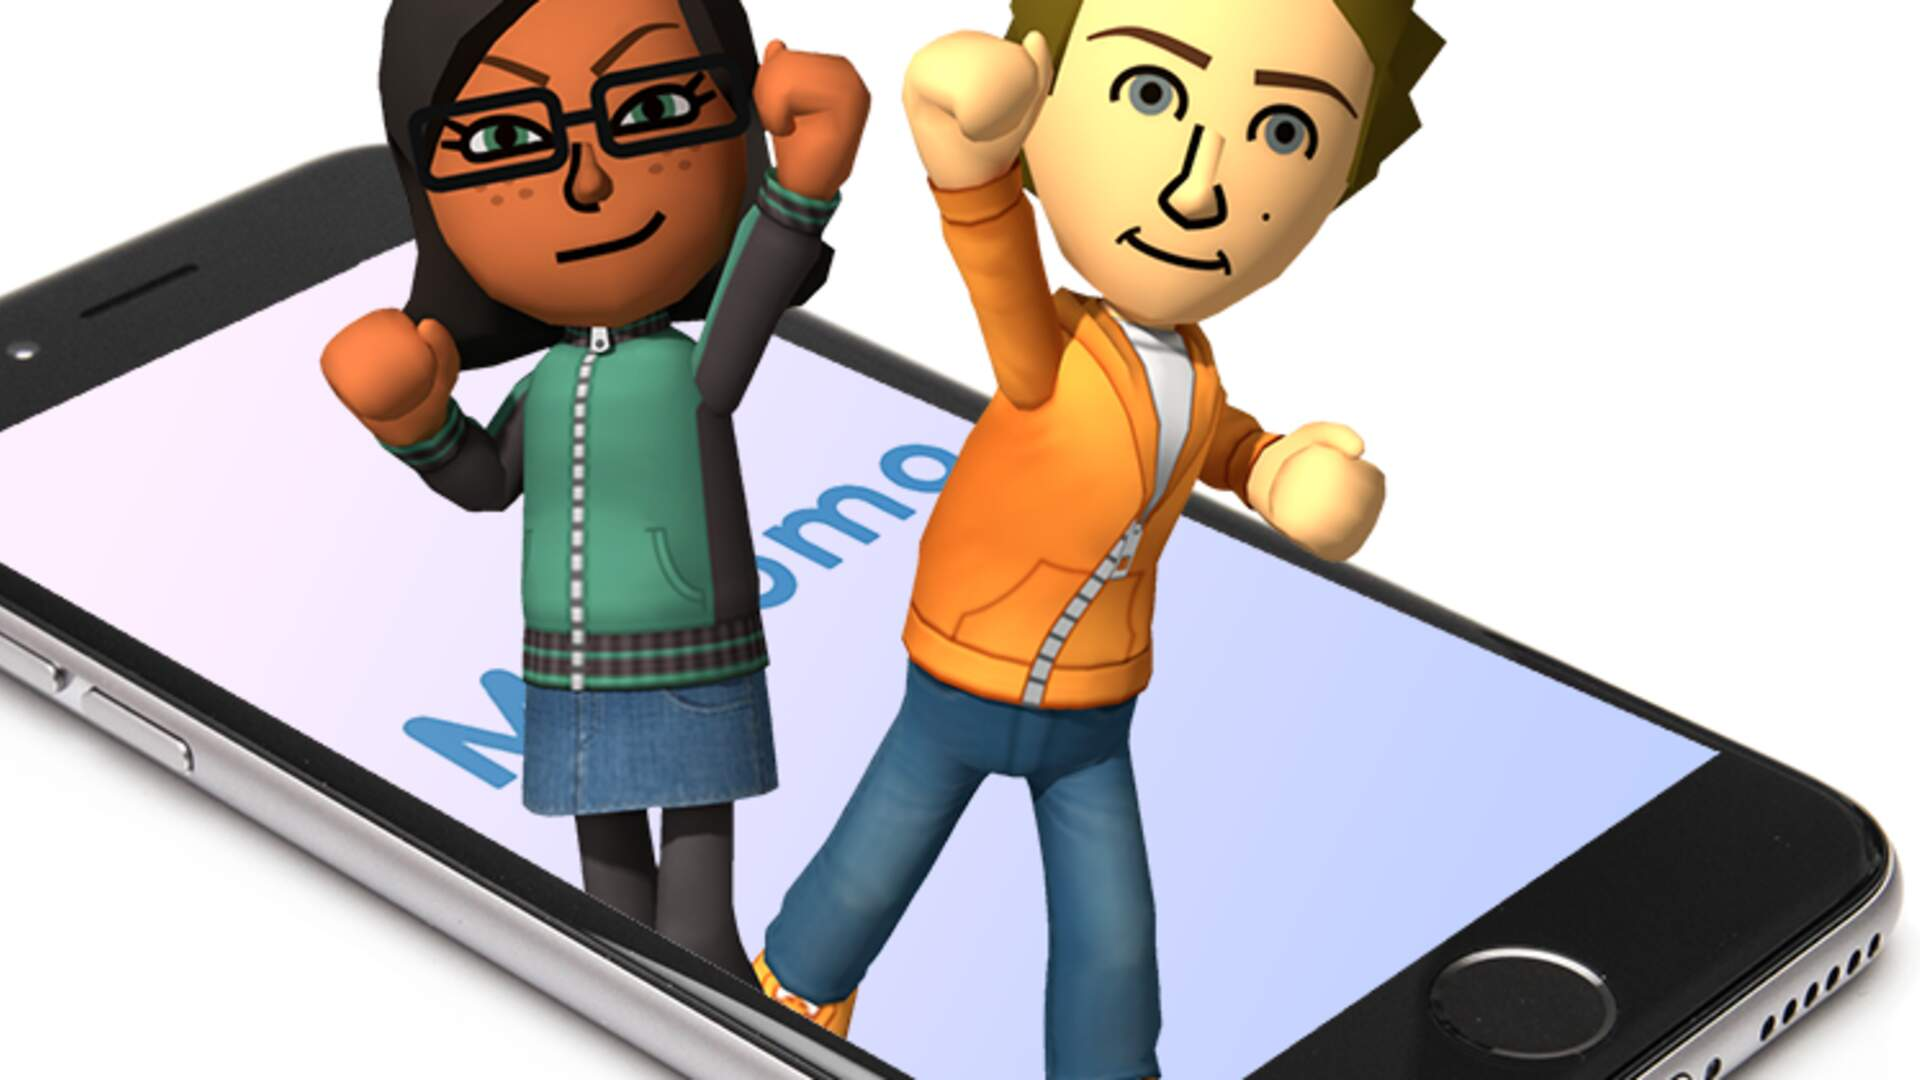 Nintendo Finally Makes the Jump to Mobile, Sticks the Landing